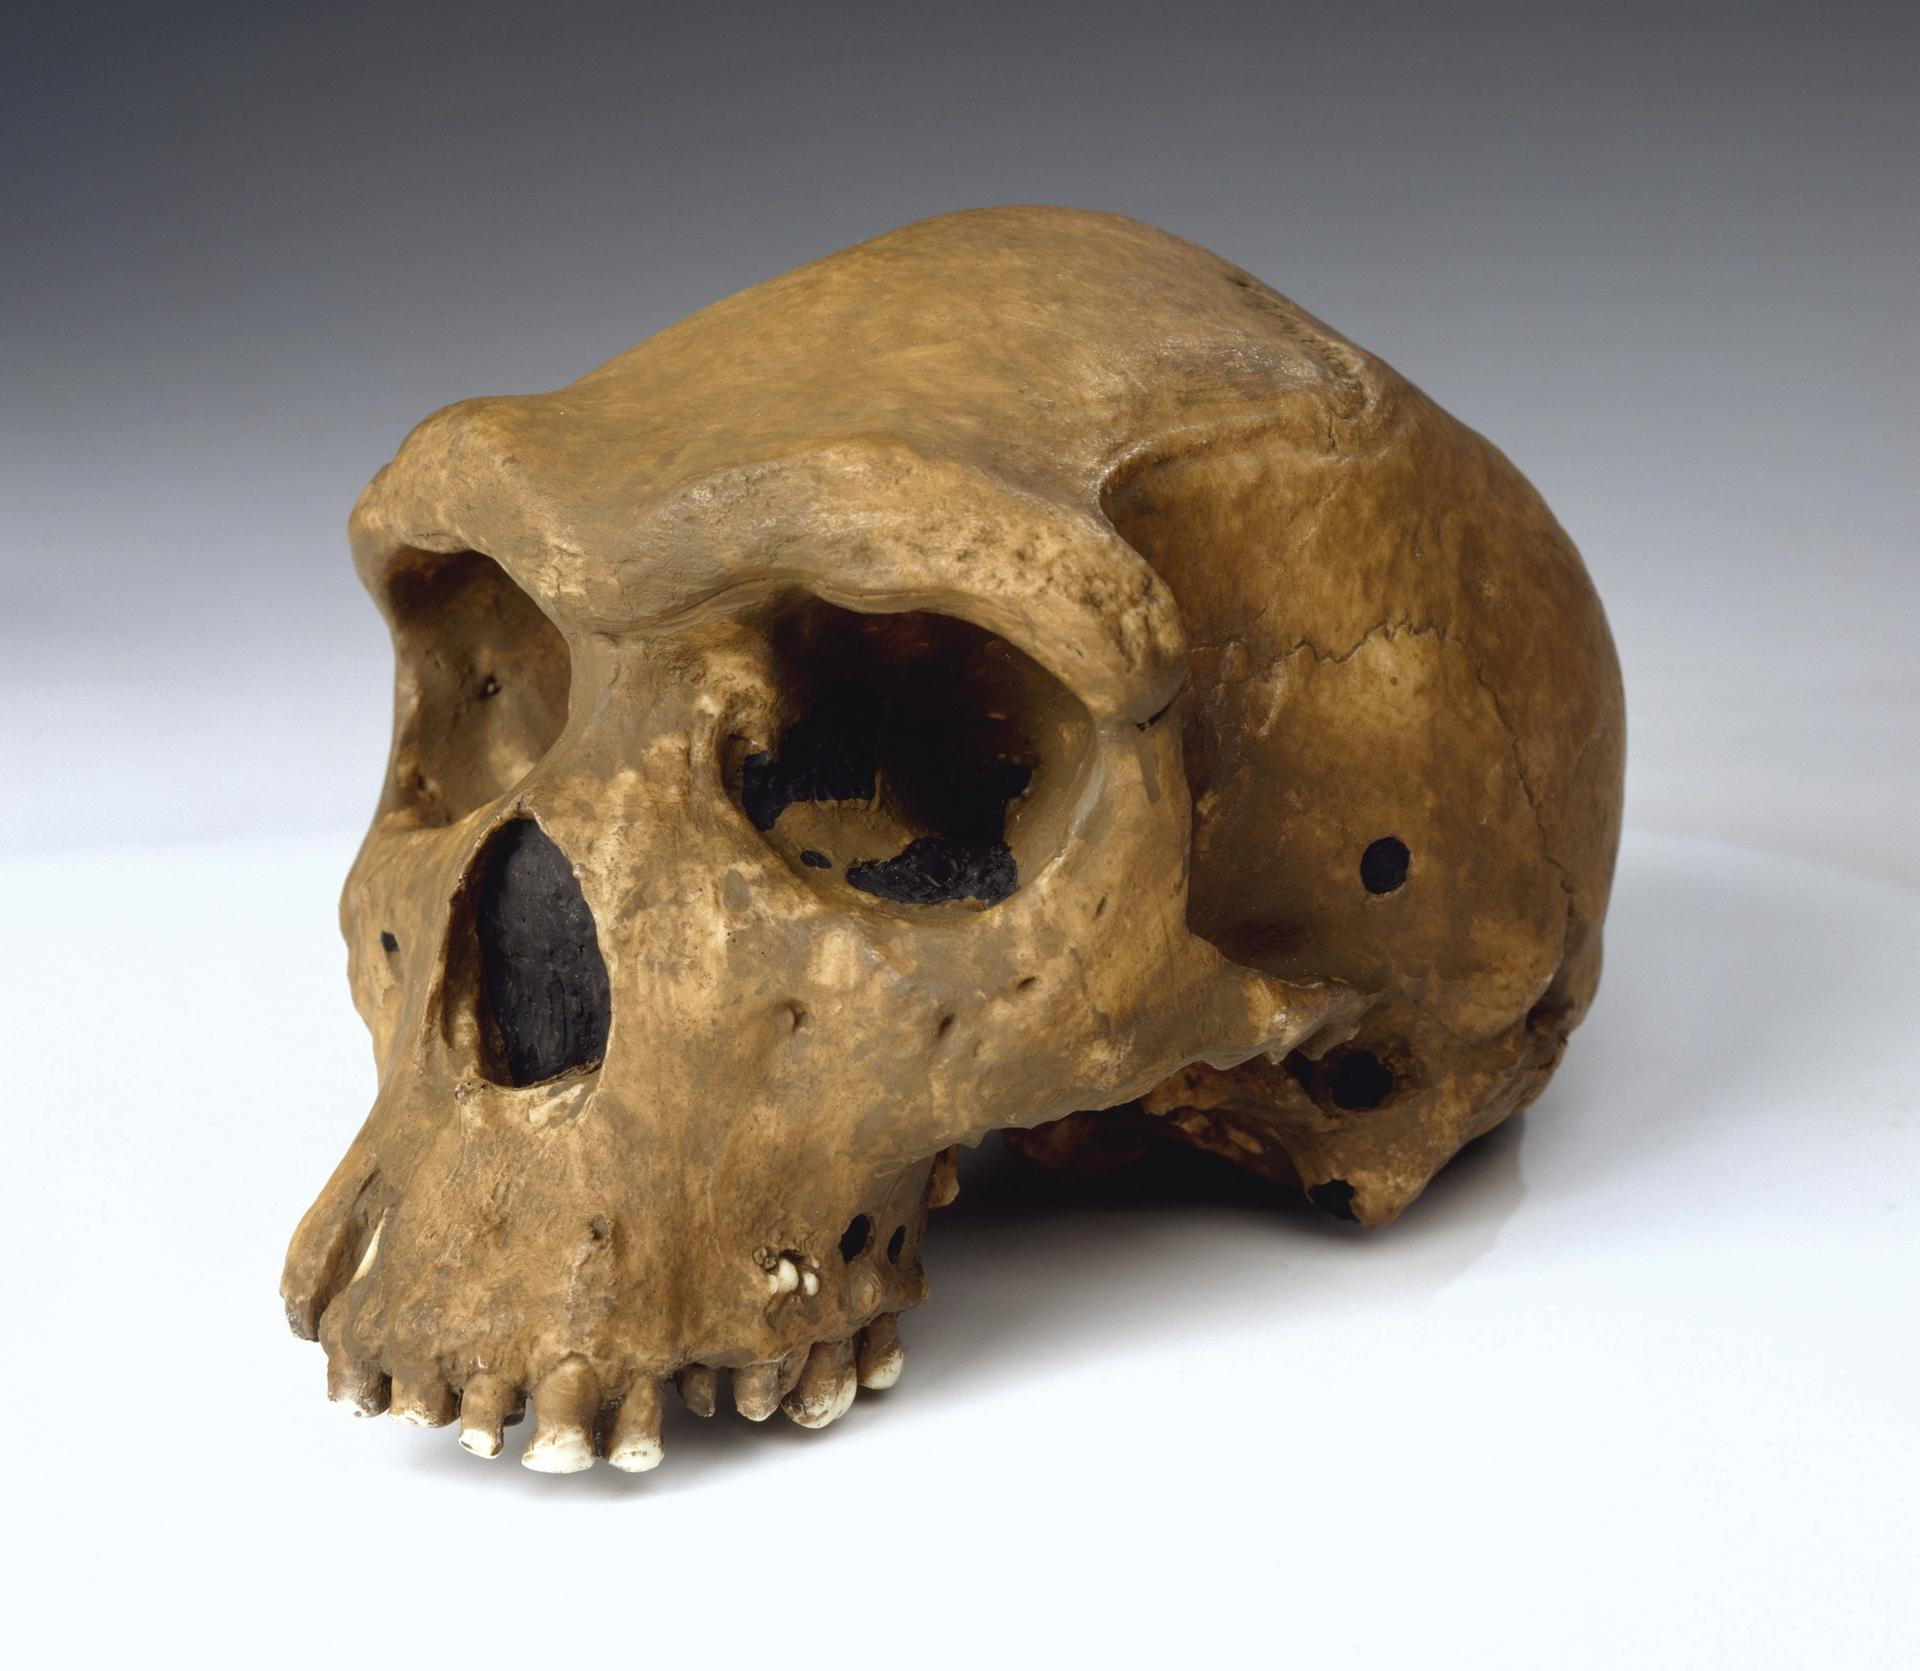 The 250,000-year-old Rhodesian Man skull was found deep in a mine in what is now Zambia in 1921 Courtesy of The Trustees of the Natural History Museum